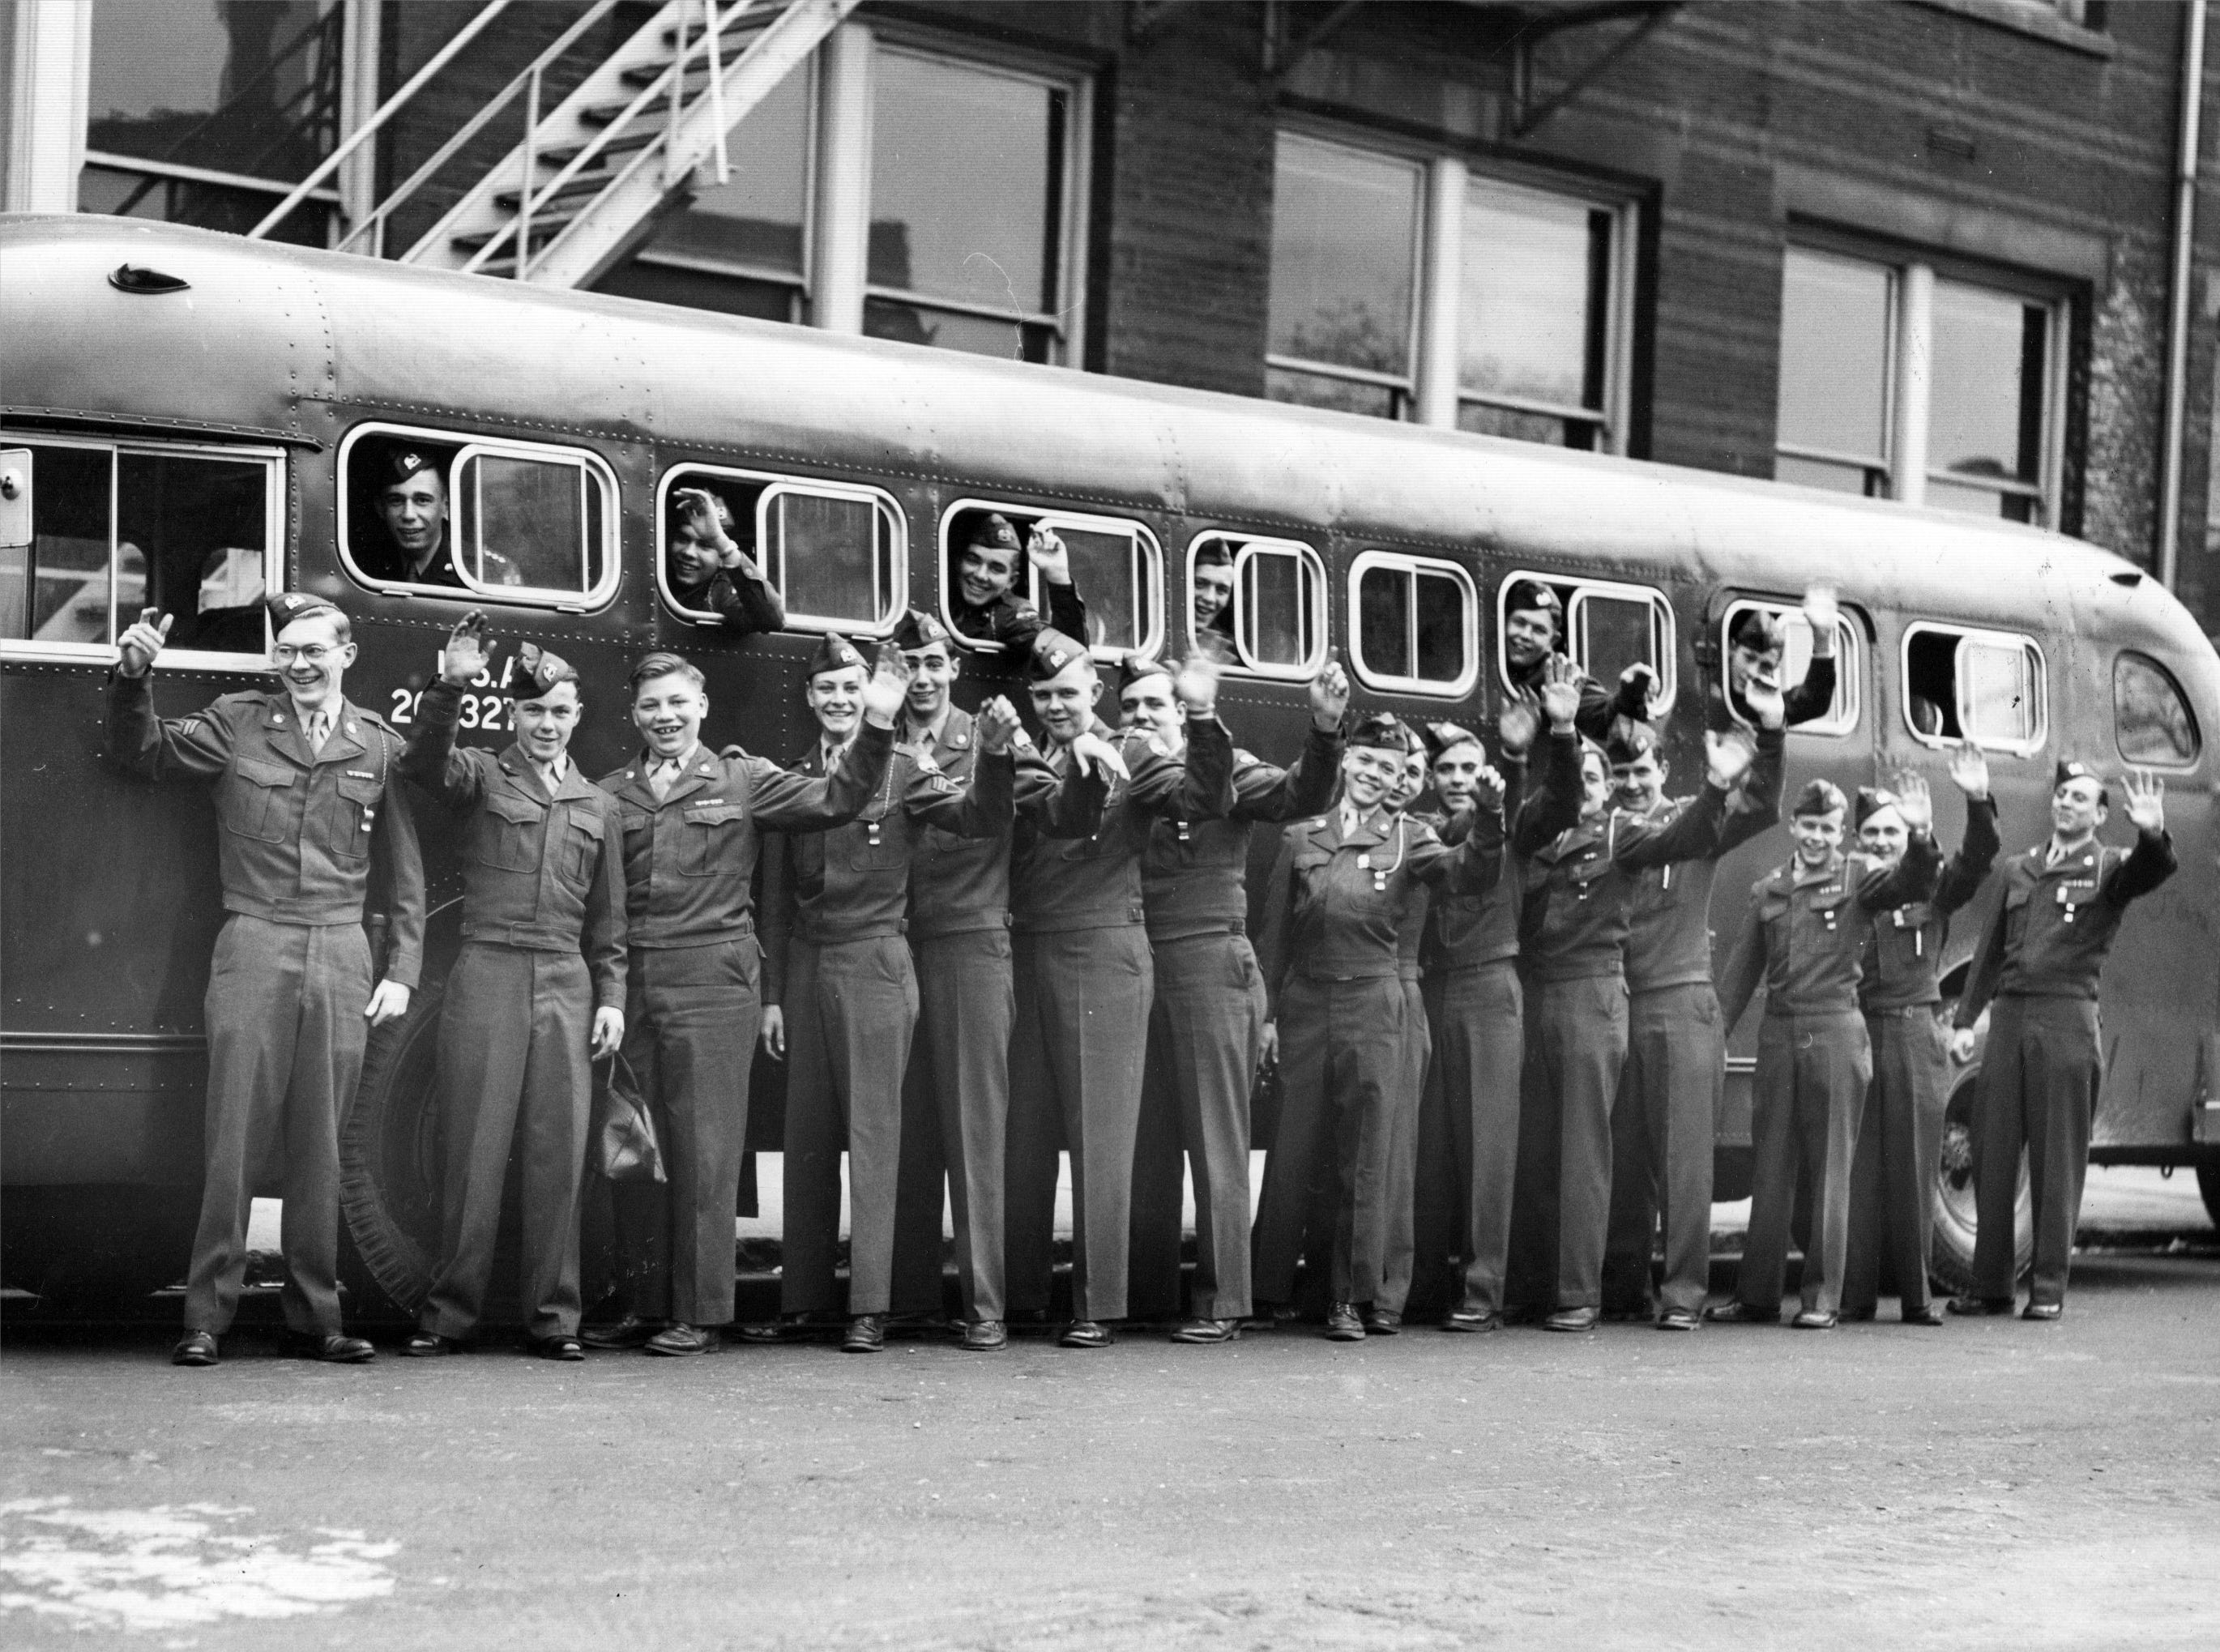 Manual High School ROTC boys get ready to board a bus for Camp Atterbury training in 1953.